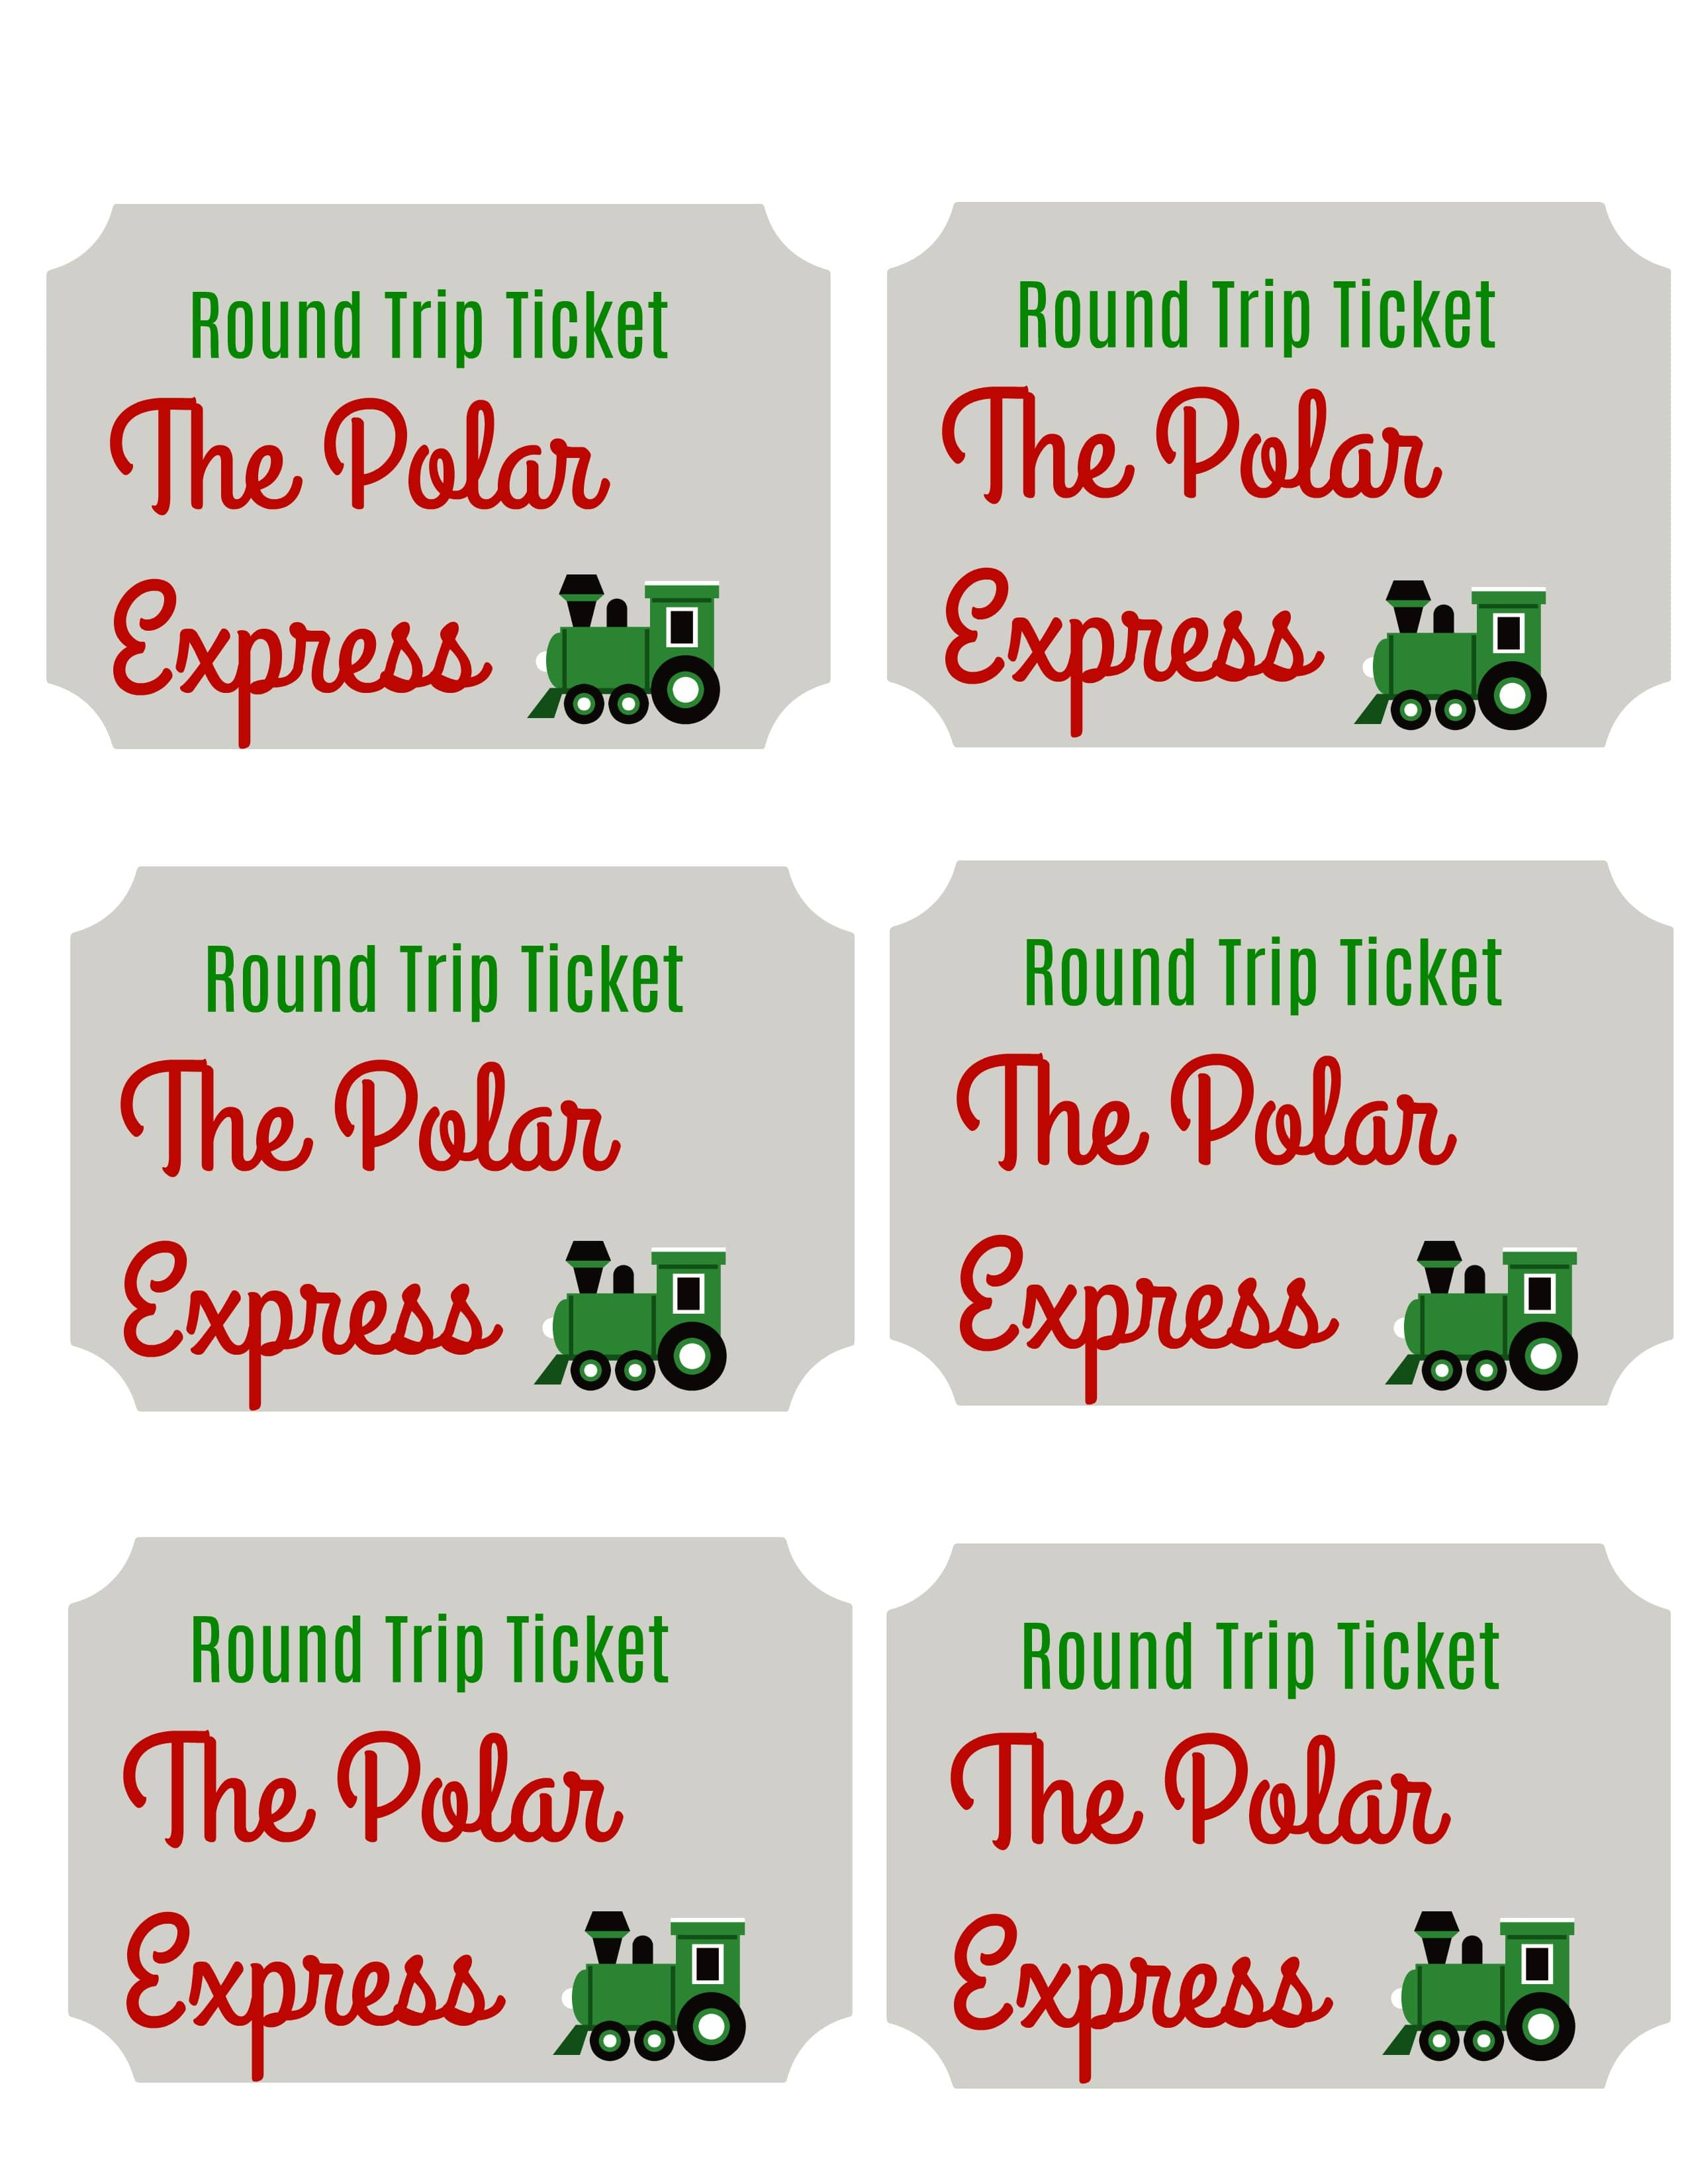 image about Polar Express Ticket Printable named Polar Categorical Printable Tickets - The Chirping Mothers